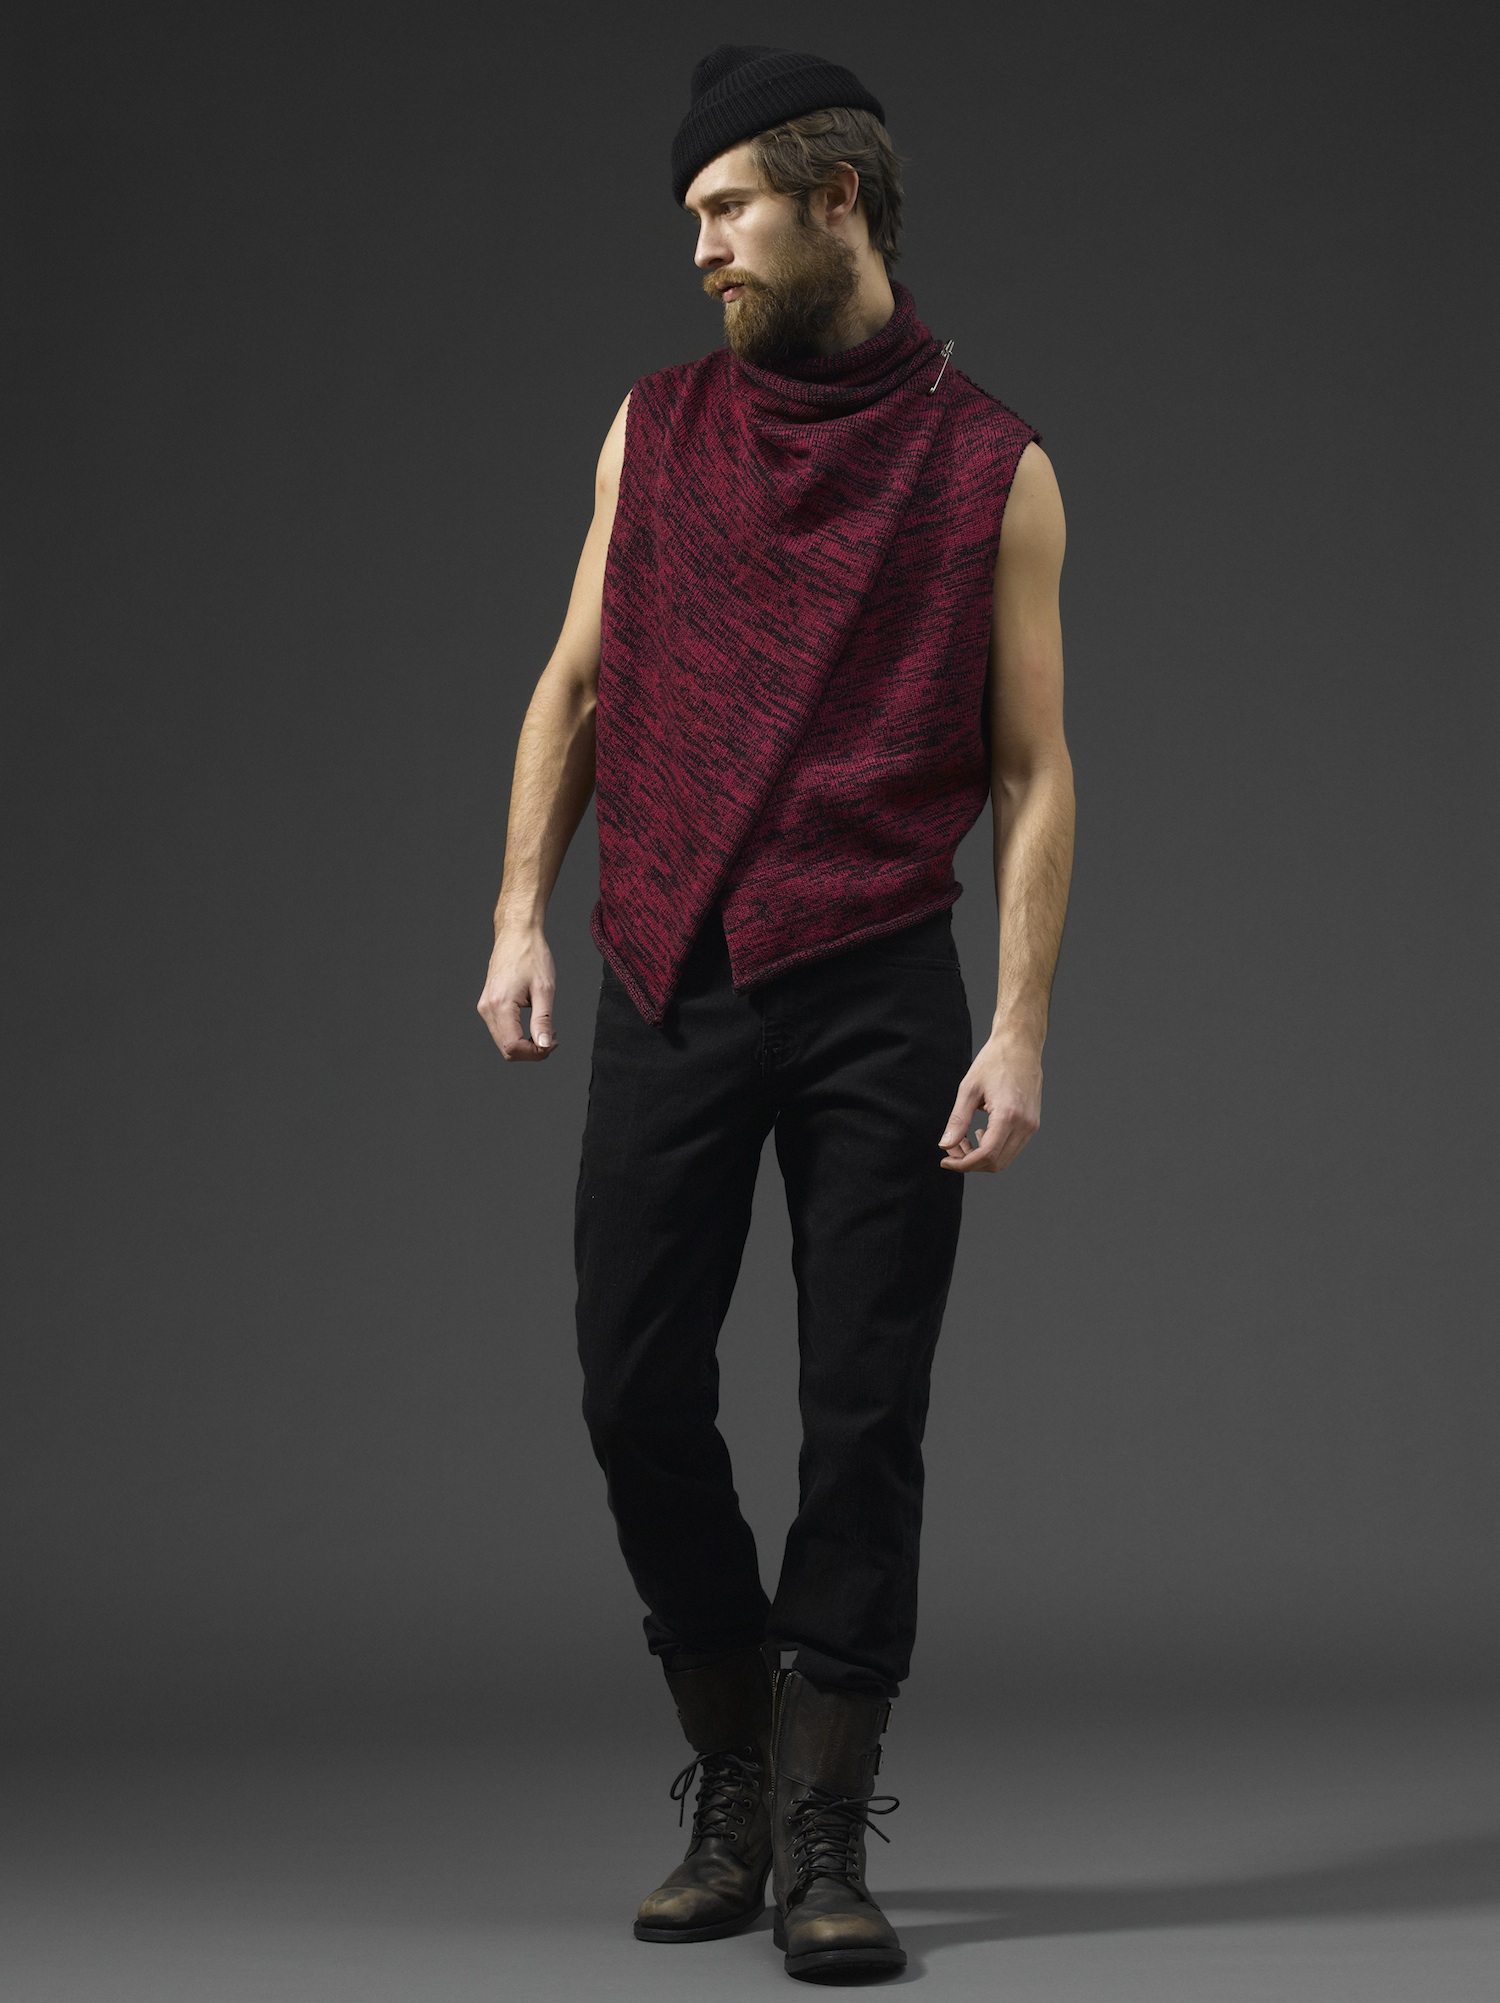 Lars Andersson Fall/Winter 2013 Collection